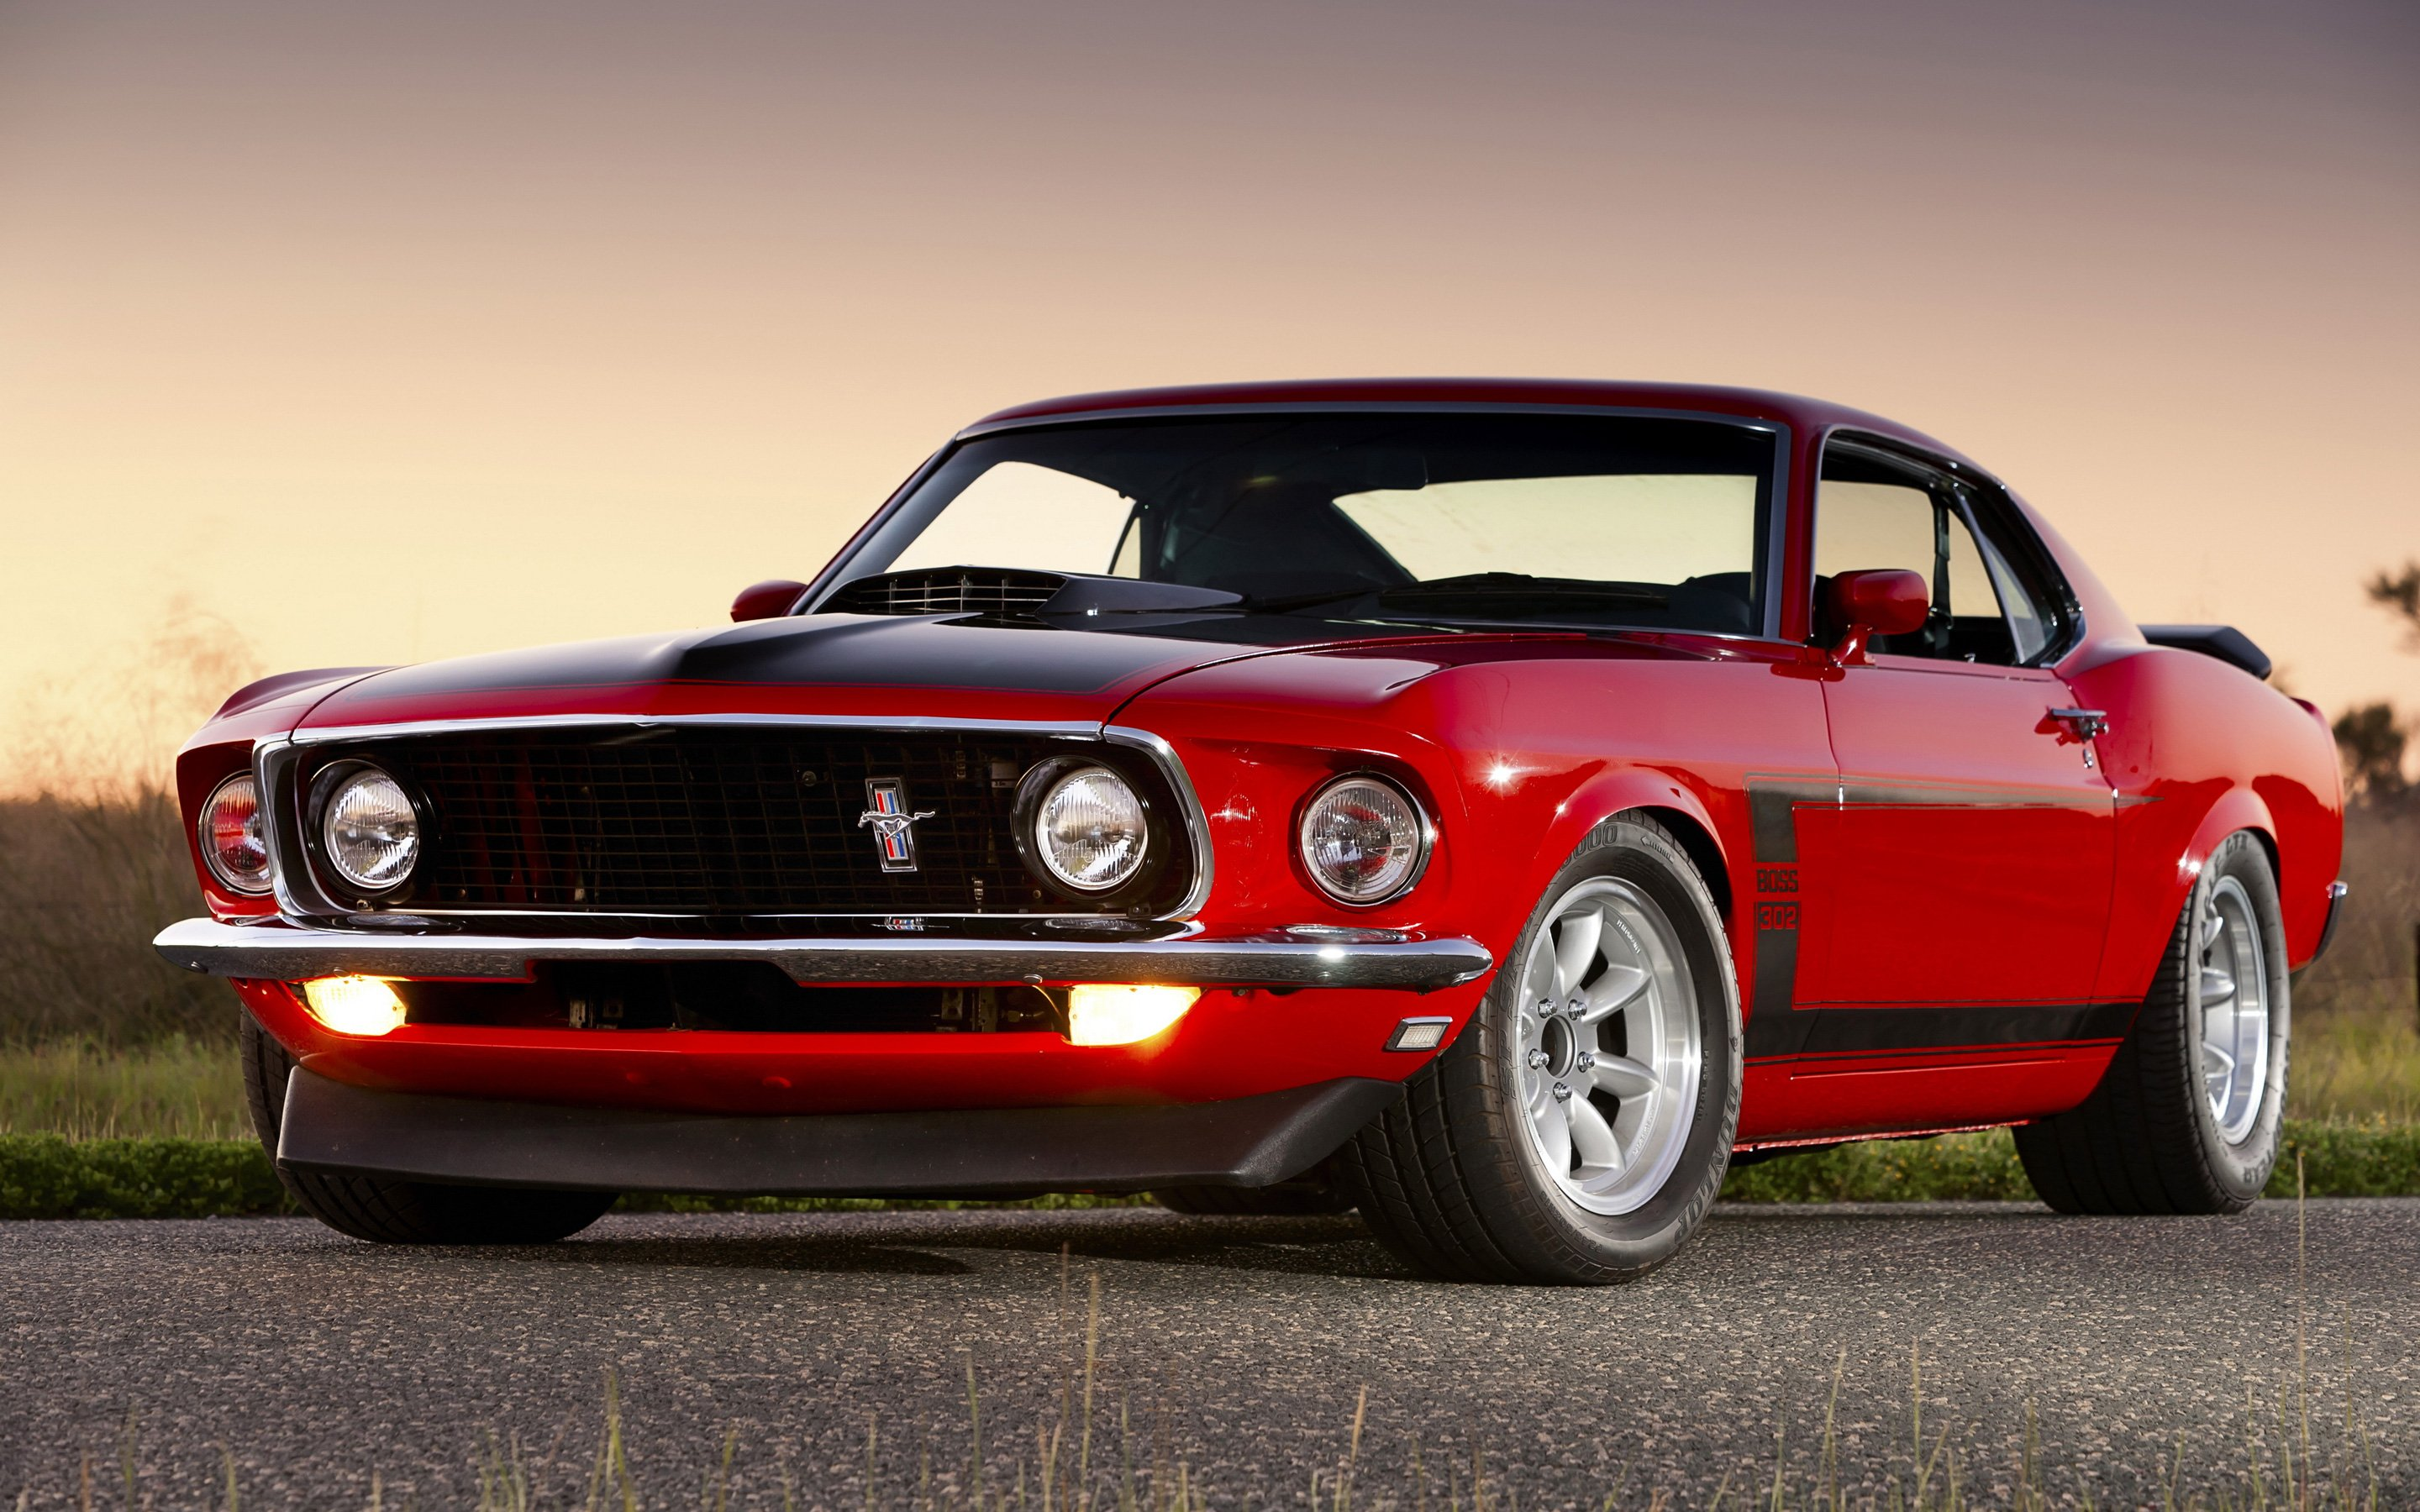 Ford Mustang Boss 302 HD Wallpaper 2880x1800